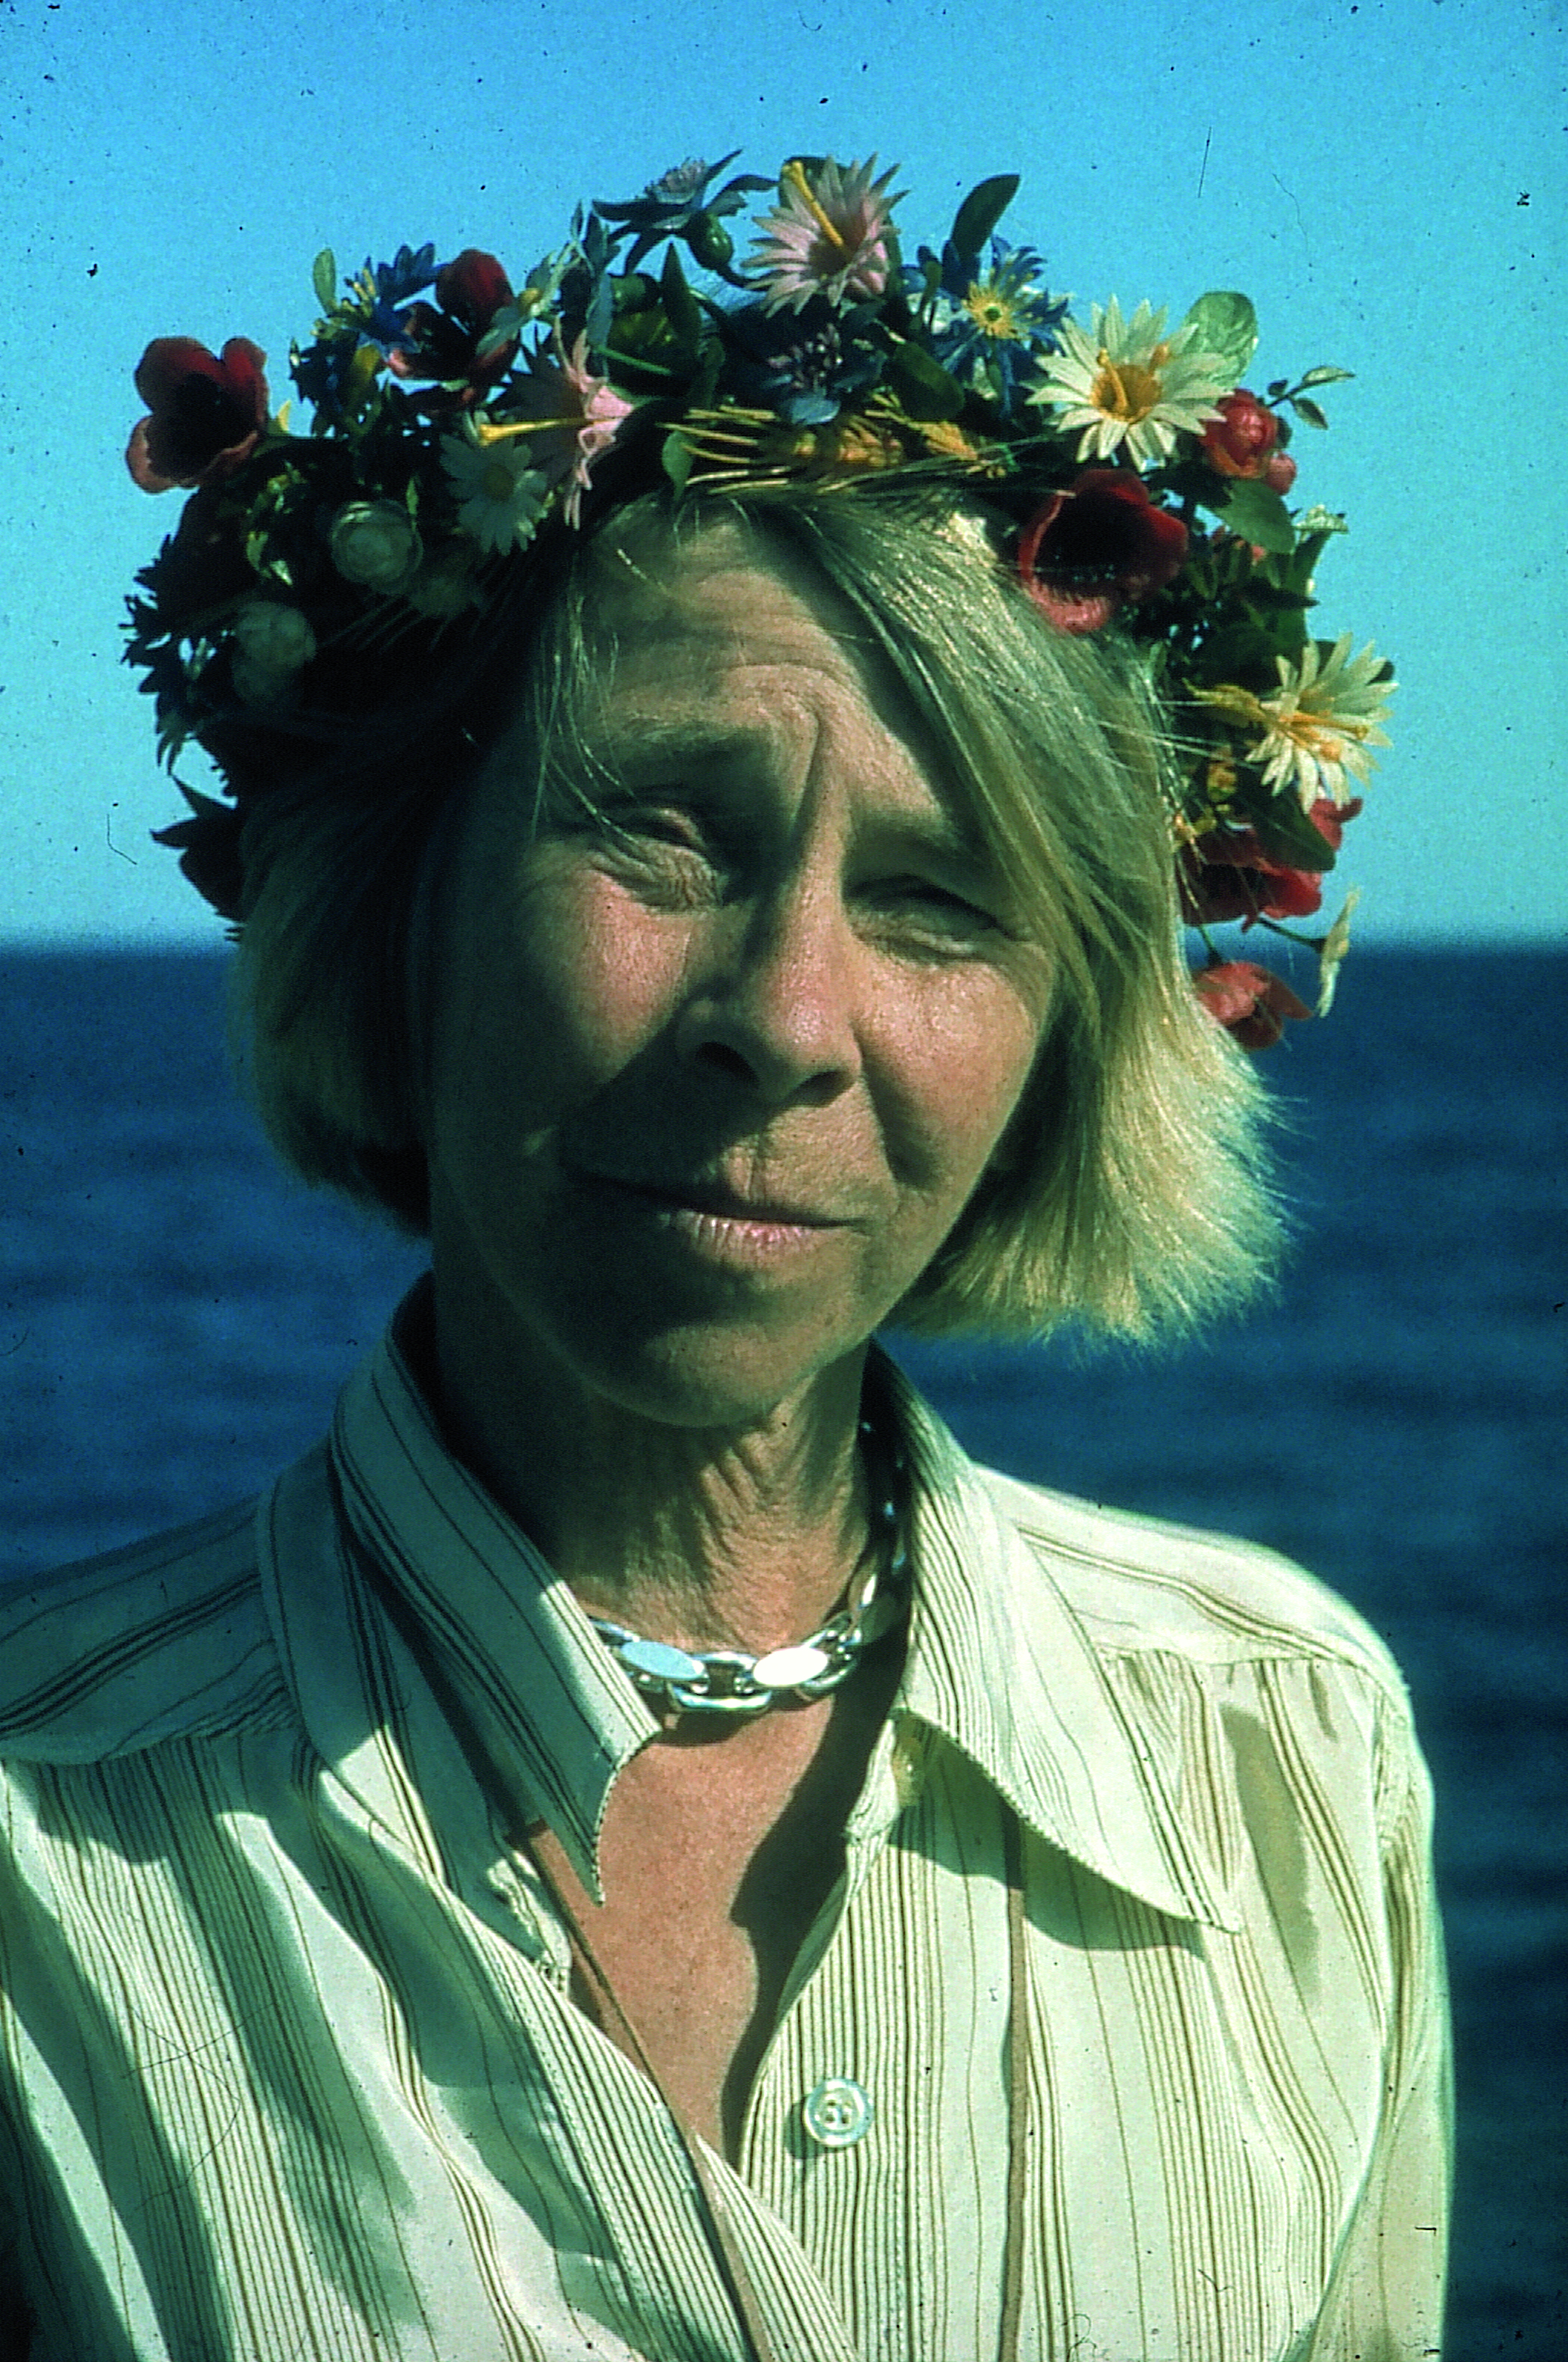 A photo of Tove Jansson